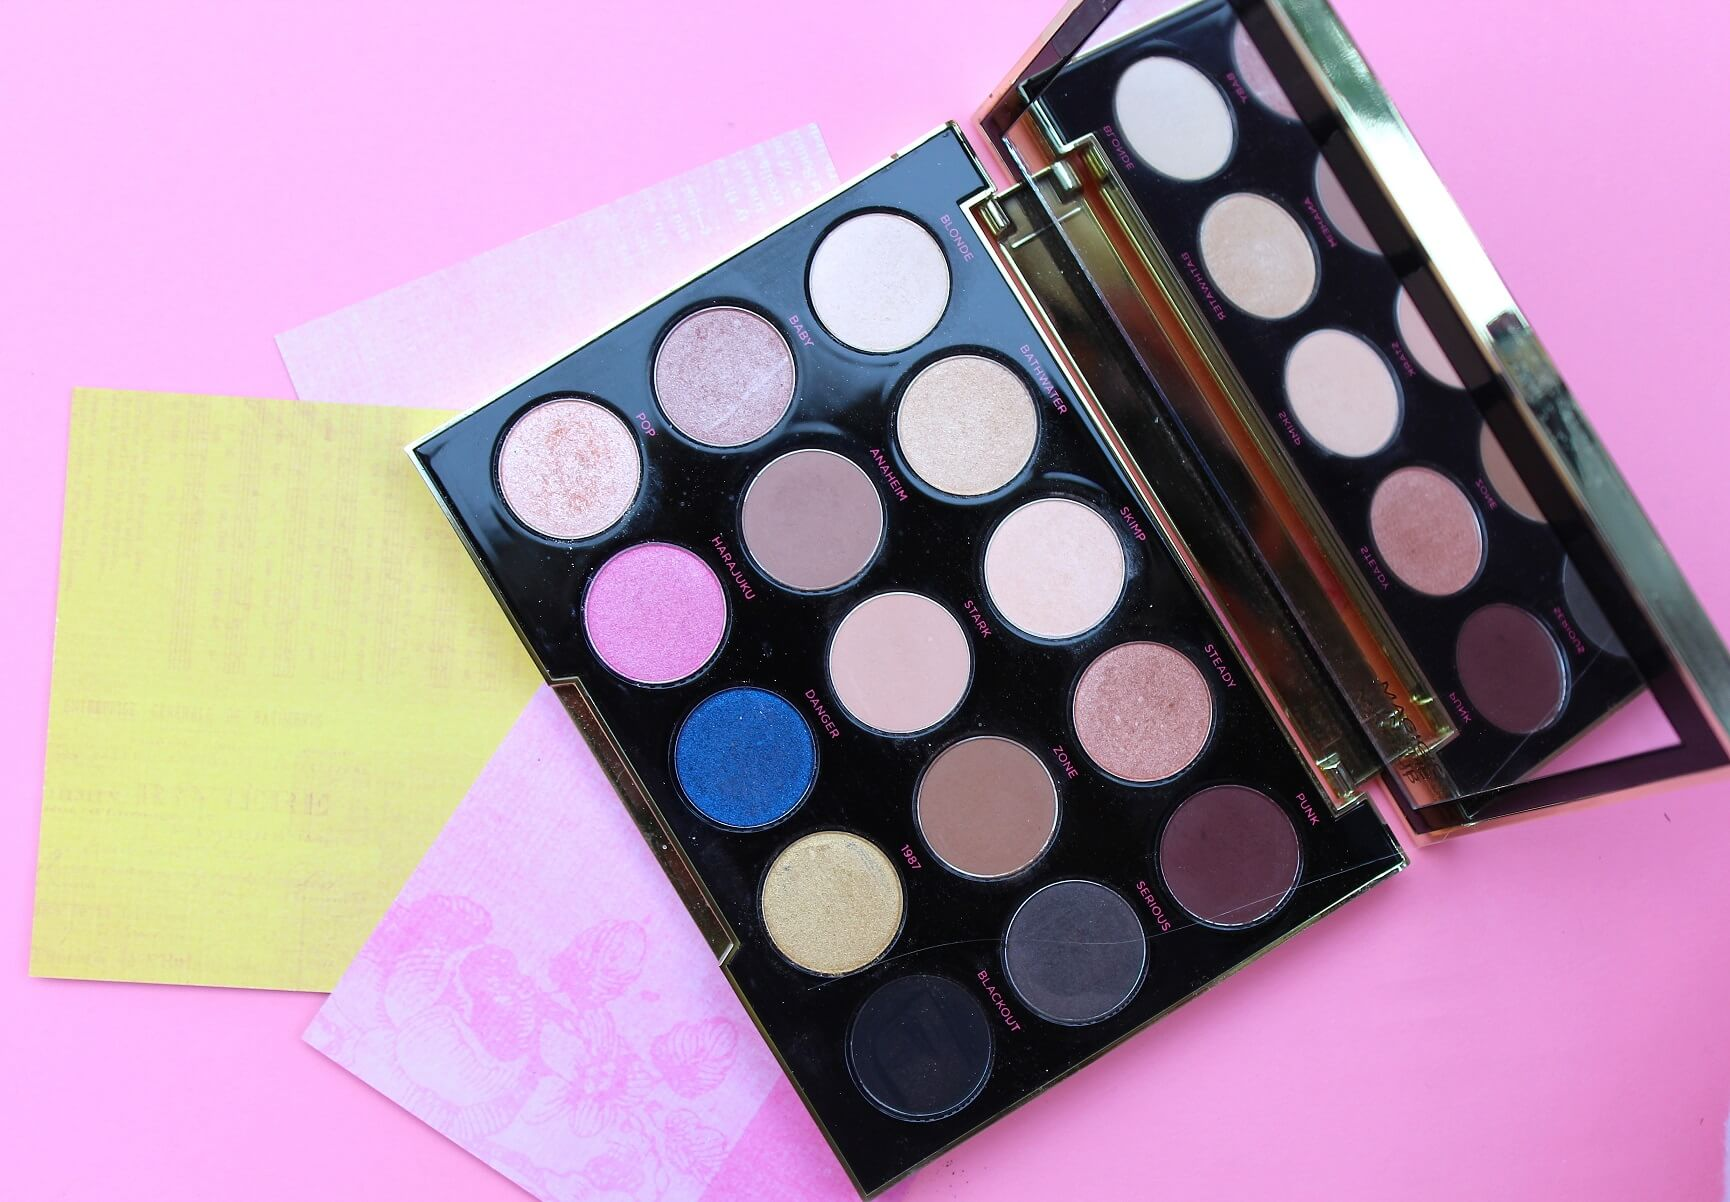 UD Gwen Stefani Pallette Review Pink Elephant Blog